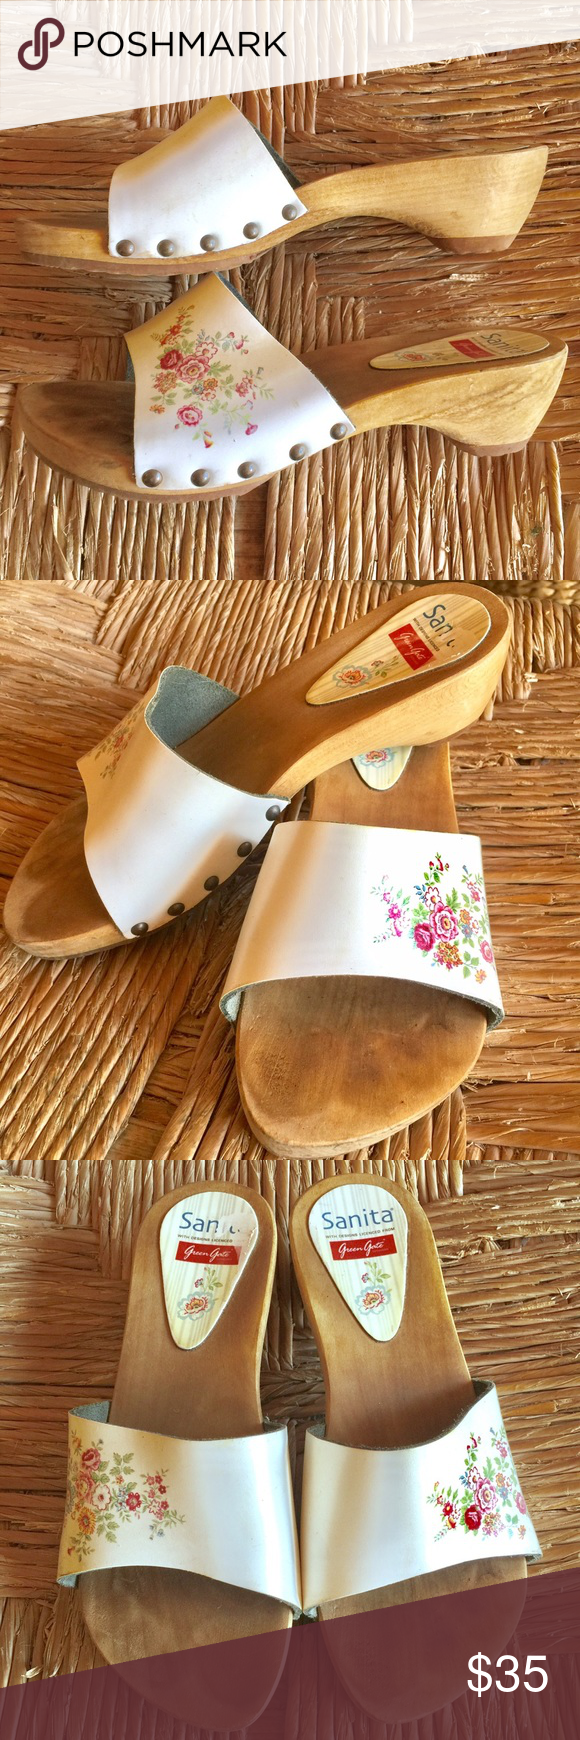 Sanita floral white clog/mule Sanita floral white clog/mule. Super cute little summer slip on clog with sweet flower detail. Worn only a couple times. Excellent condition. Sanita Shoes Mules & Clogs